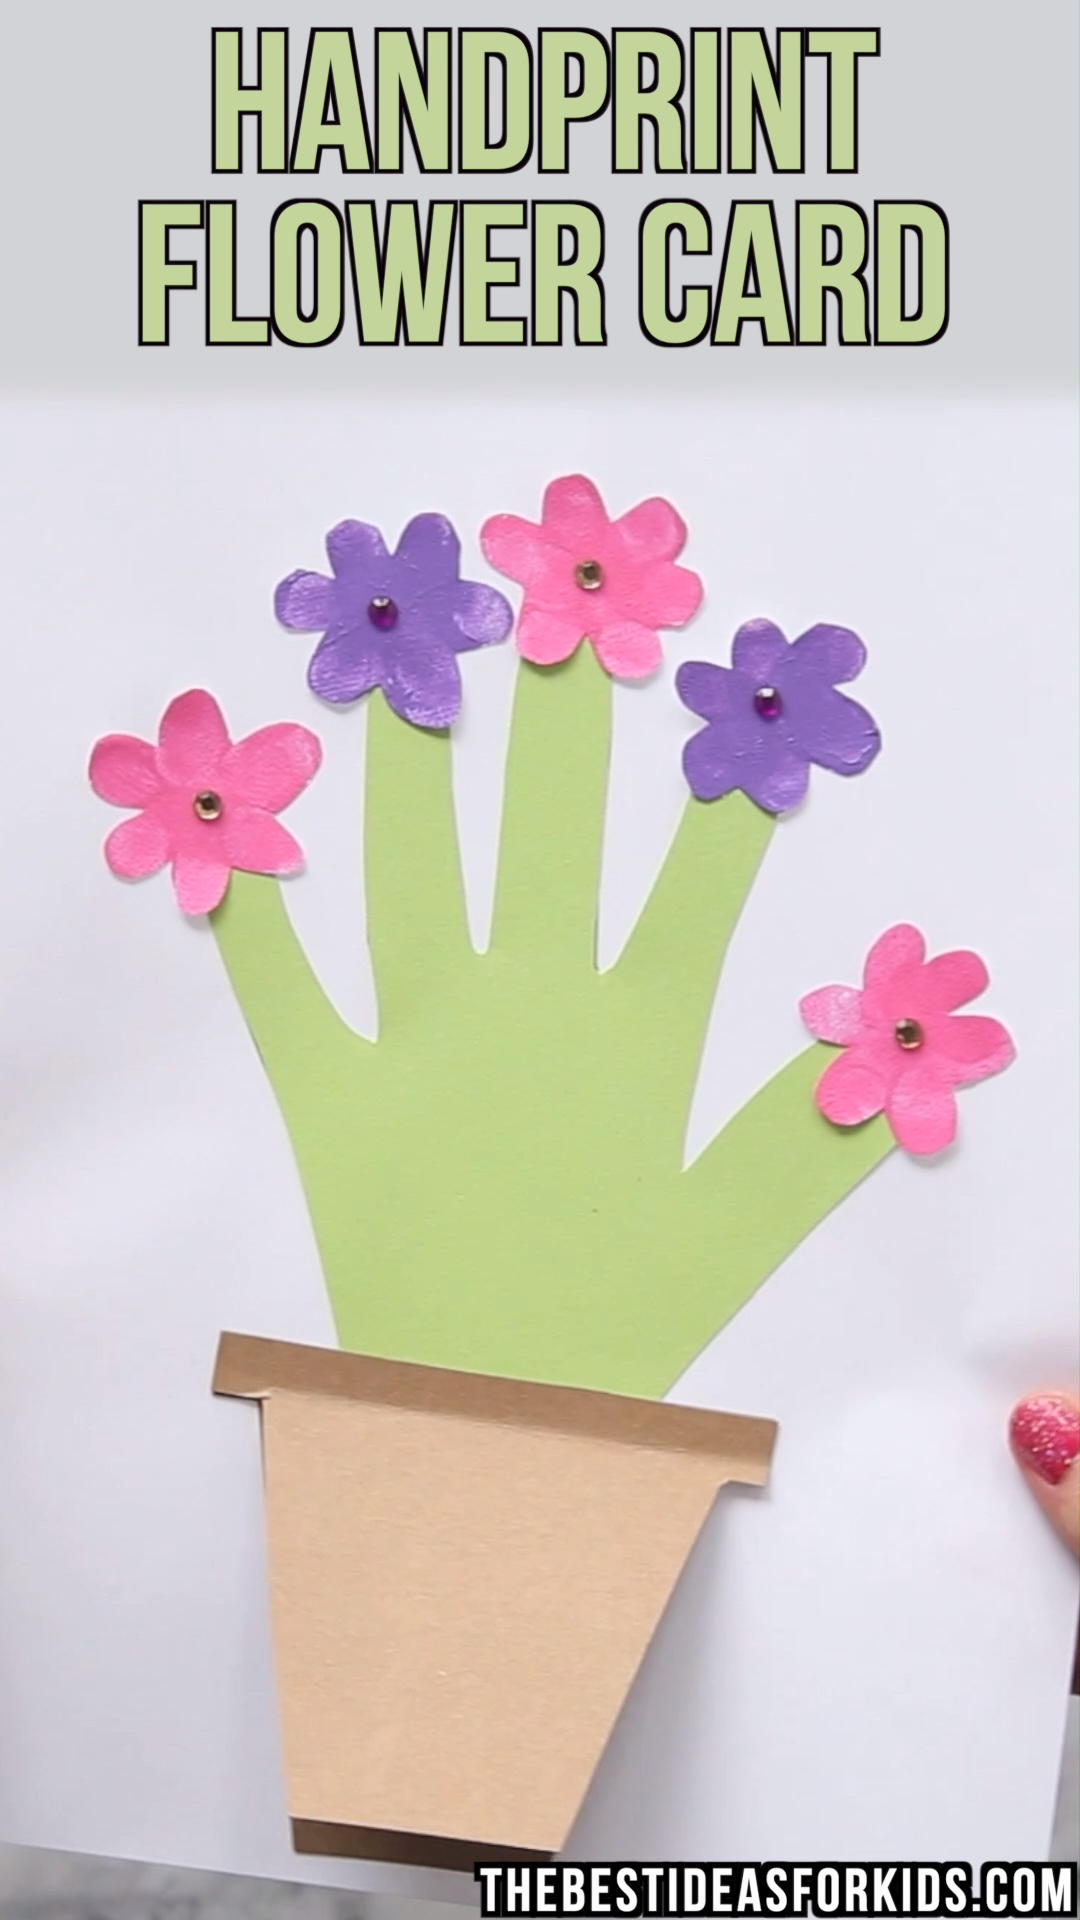 HANDPRINT FLOWER CARD ???? #craftsforkids